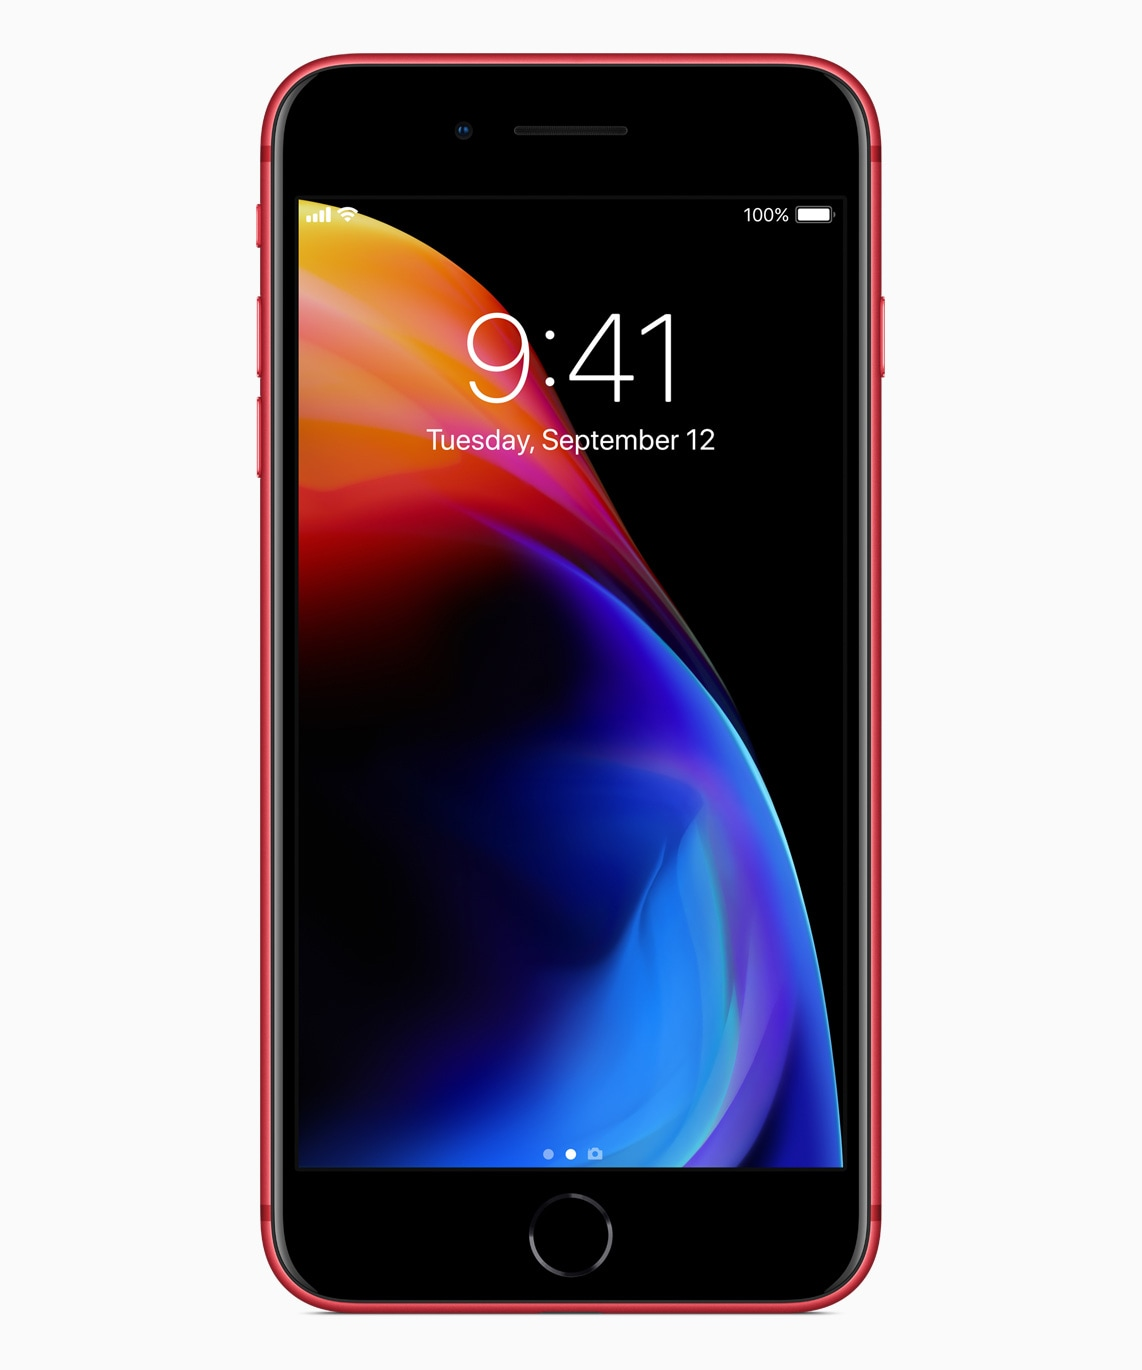 iphone8plus_product_red_front